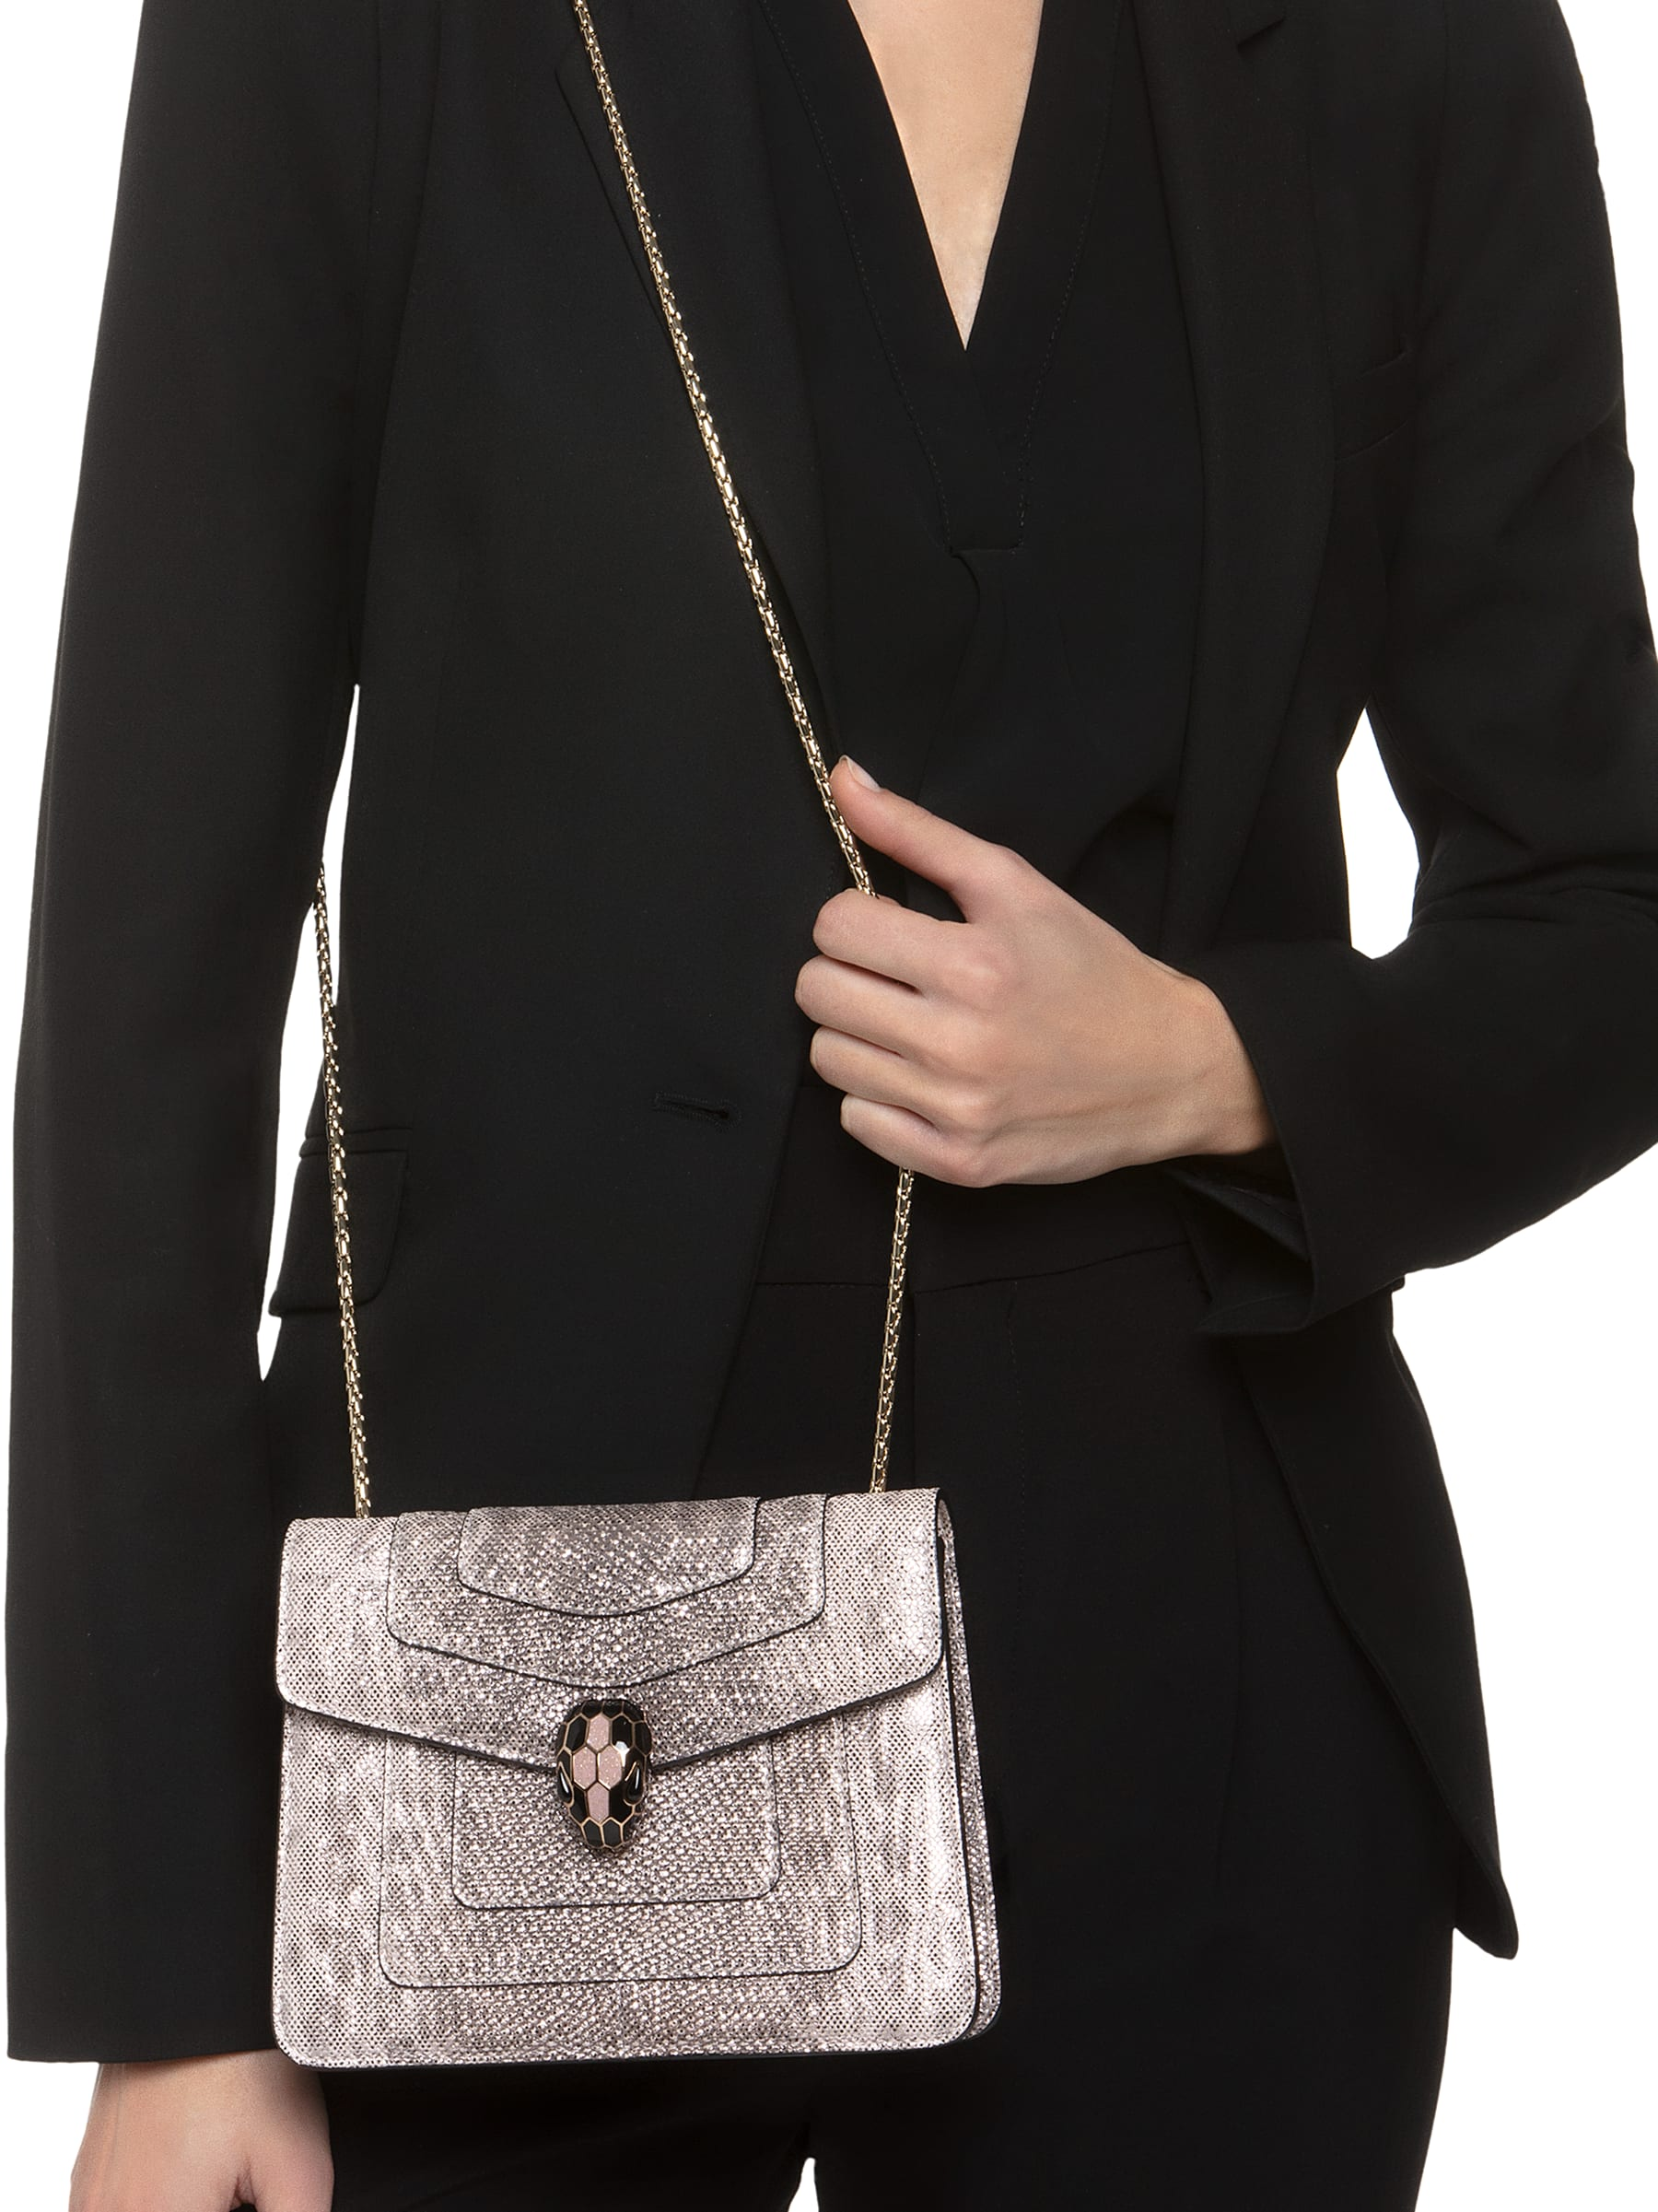 """""""Serpenti Forever"""" crossbody bag in crystal rose metallic karung skin. Iconic snakehead closure in light gold plated brass enriched with glitter rose gold and shiny black enamel and black onyx eyes 287087 image 2"""